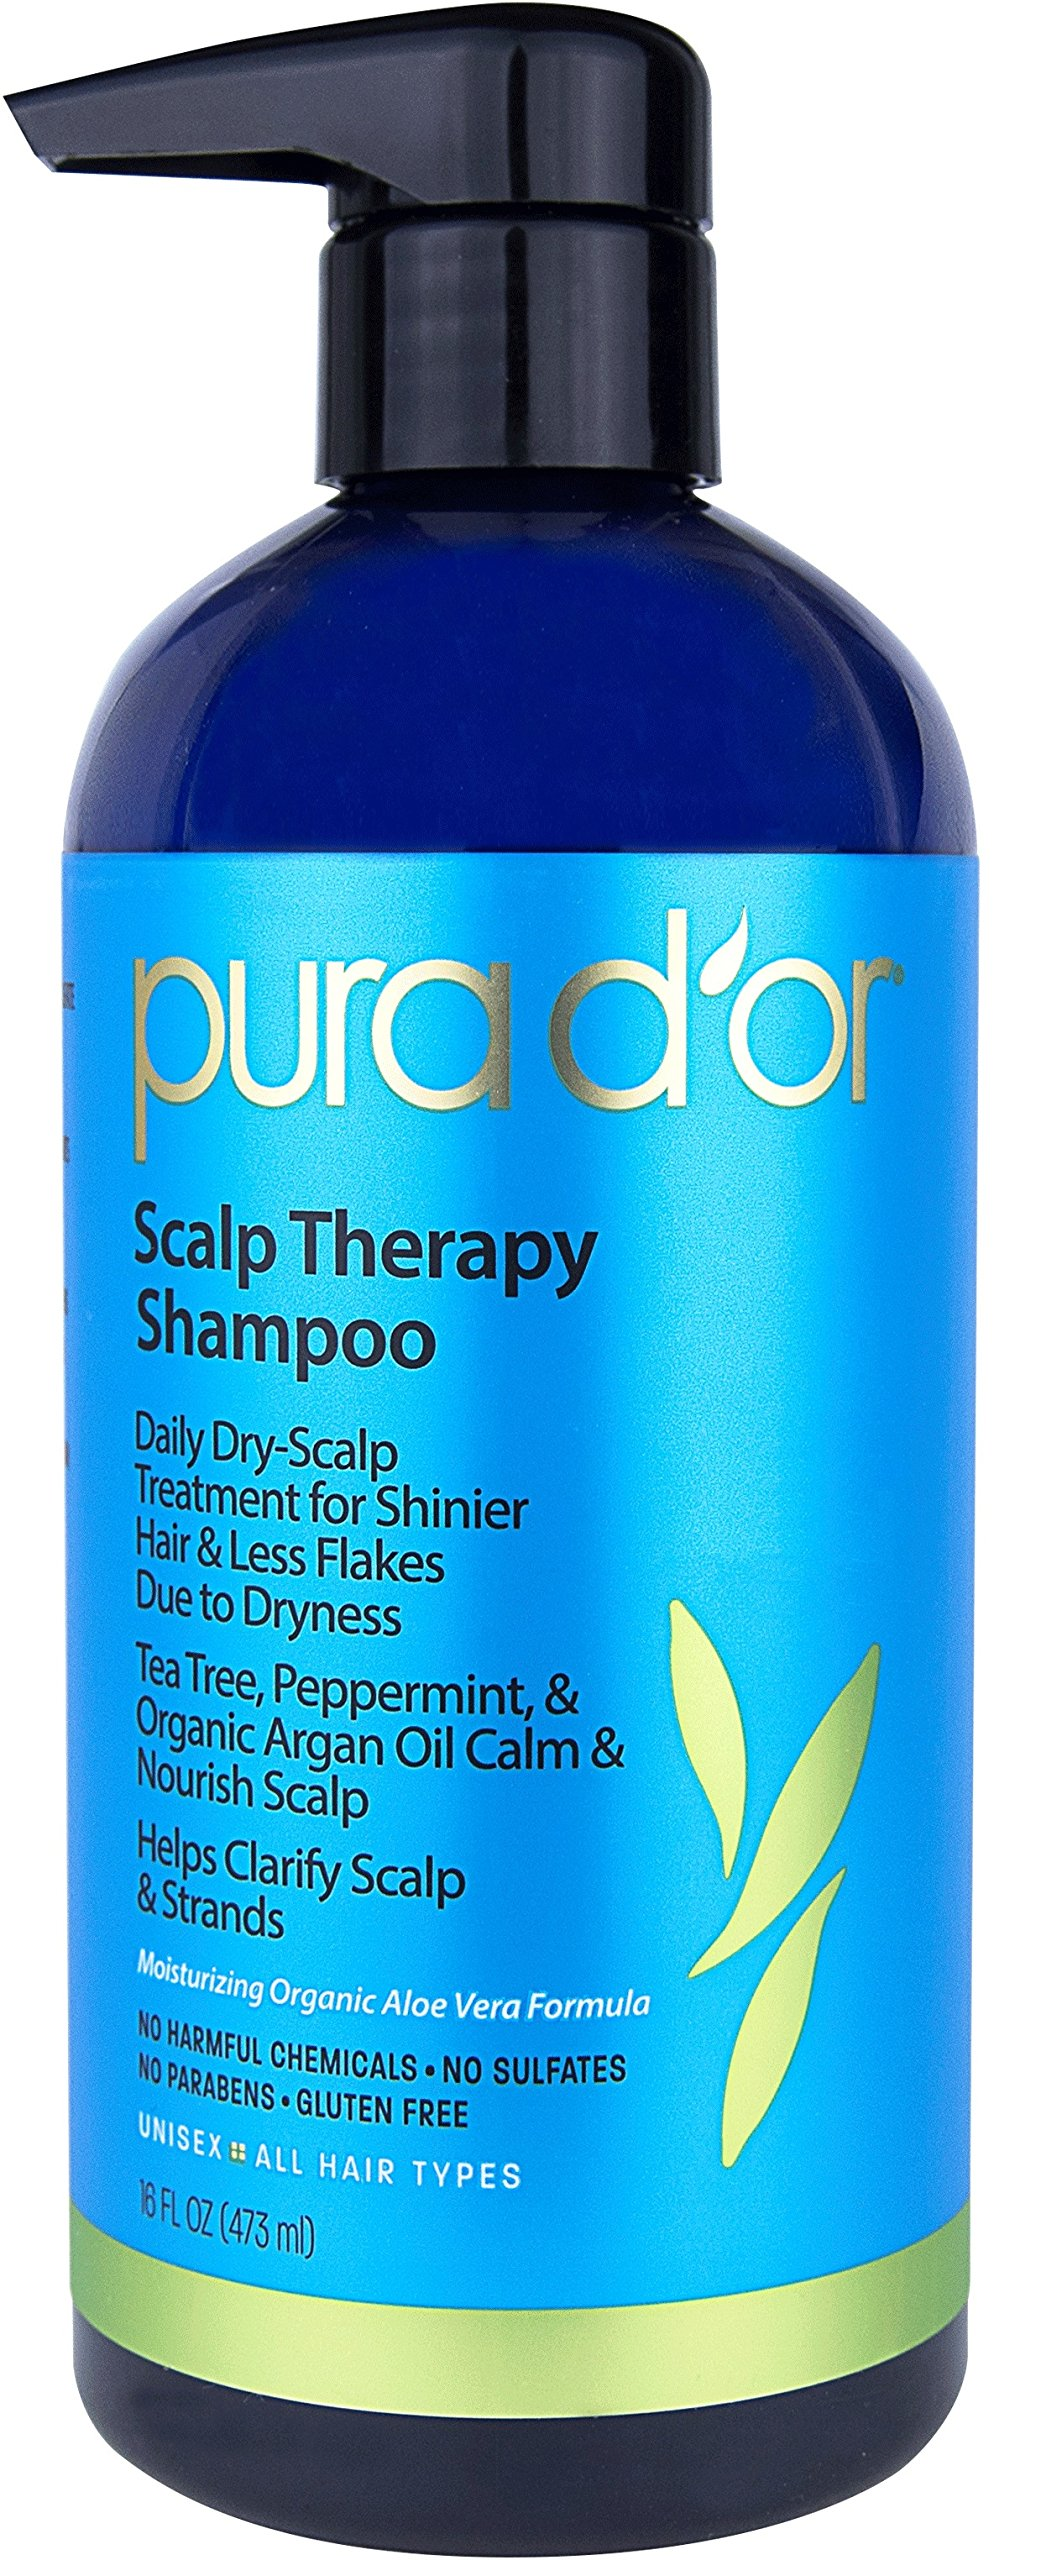 PURA D'OR Scalp Therapy Shampoo for Dandruff, Itching & Flaking Relief, Infused with Organic Argan Oil & Tree Tea Oil, Color Safe, Sulfate Free Treatment for All Hair Types, Men and Women, 16 Fl Oz